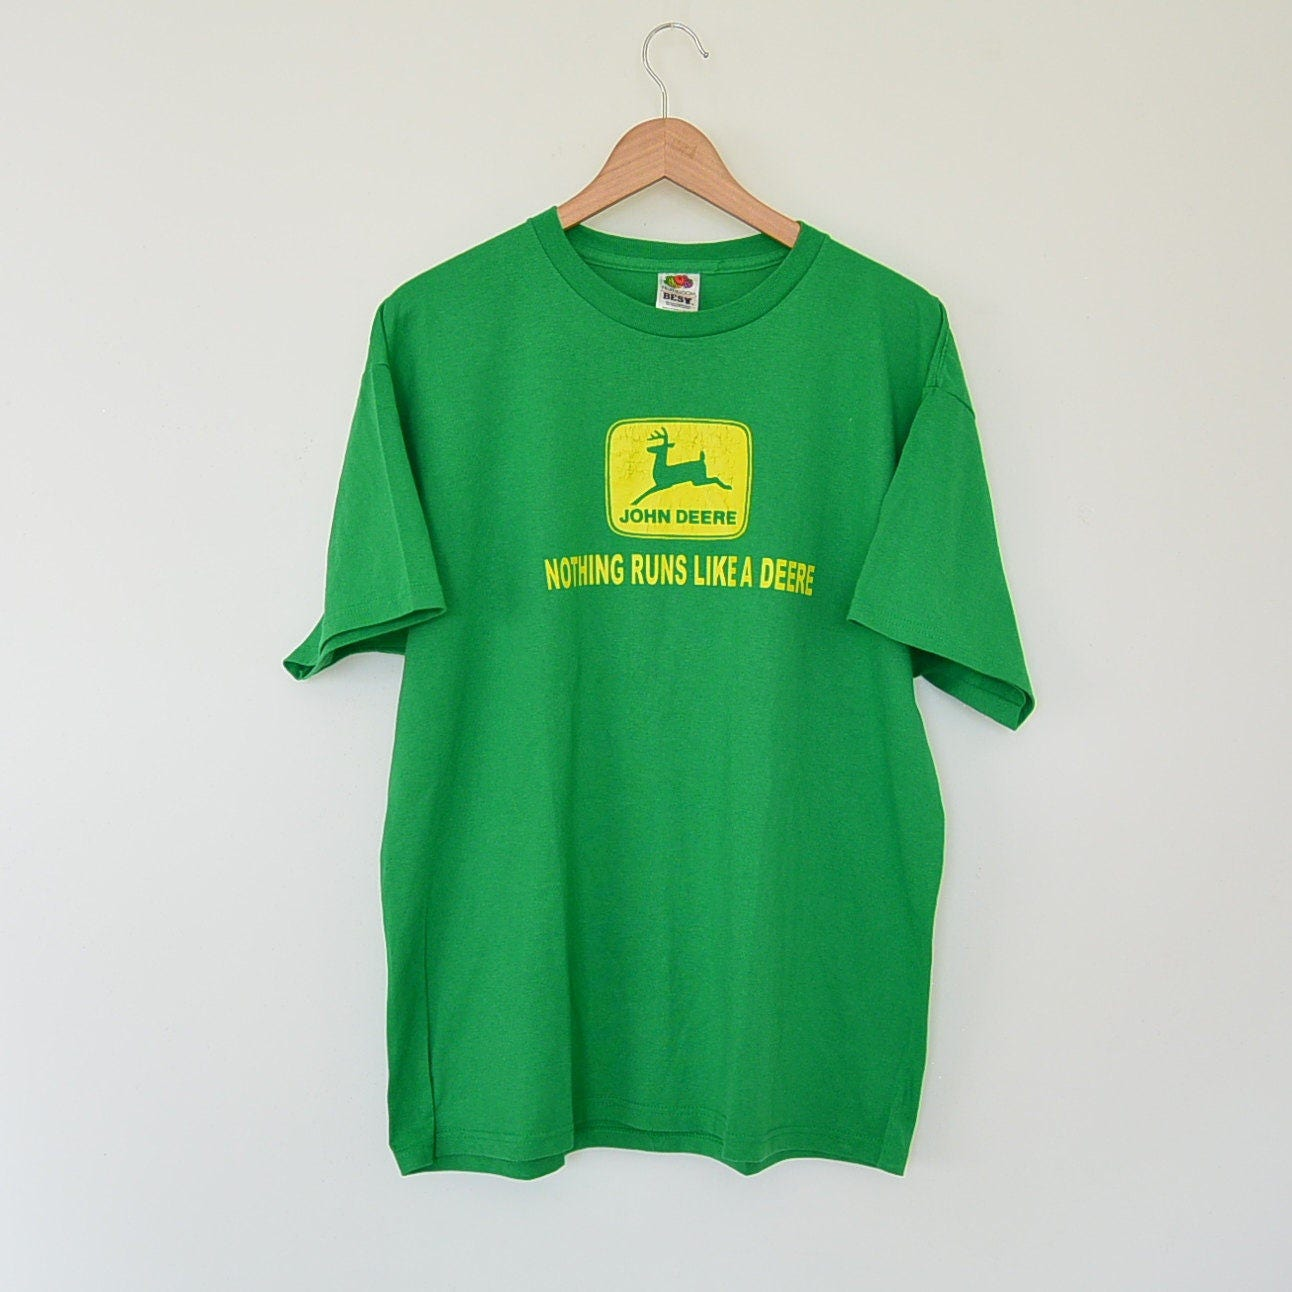 John Deere Vintage Tee Shirt Nothing Runs Like A Deere Spell Etsy